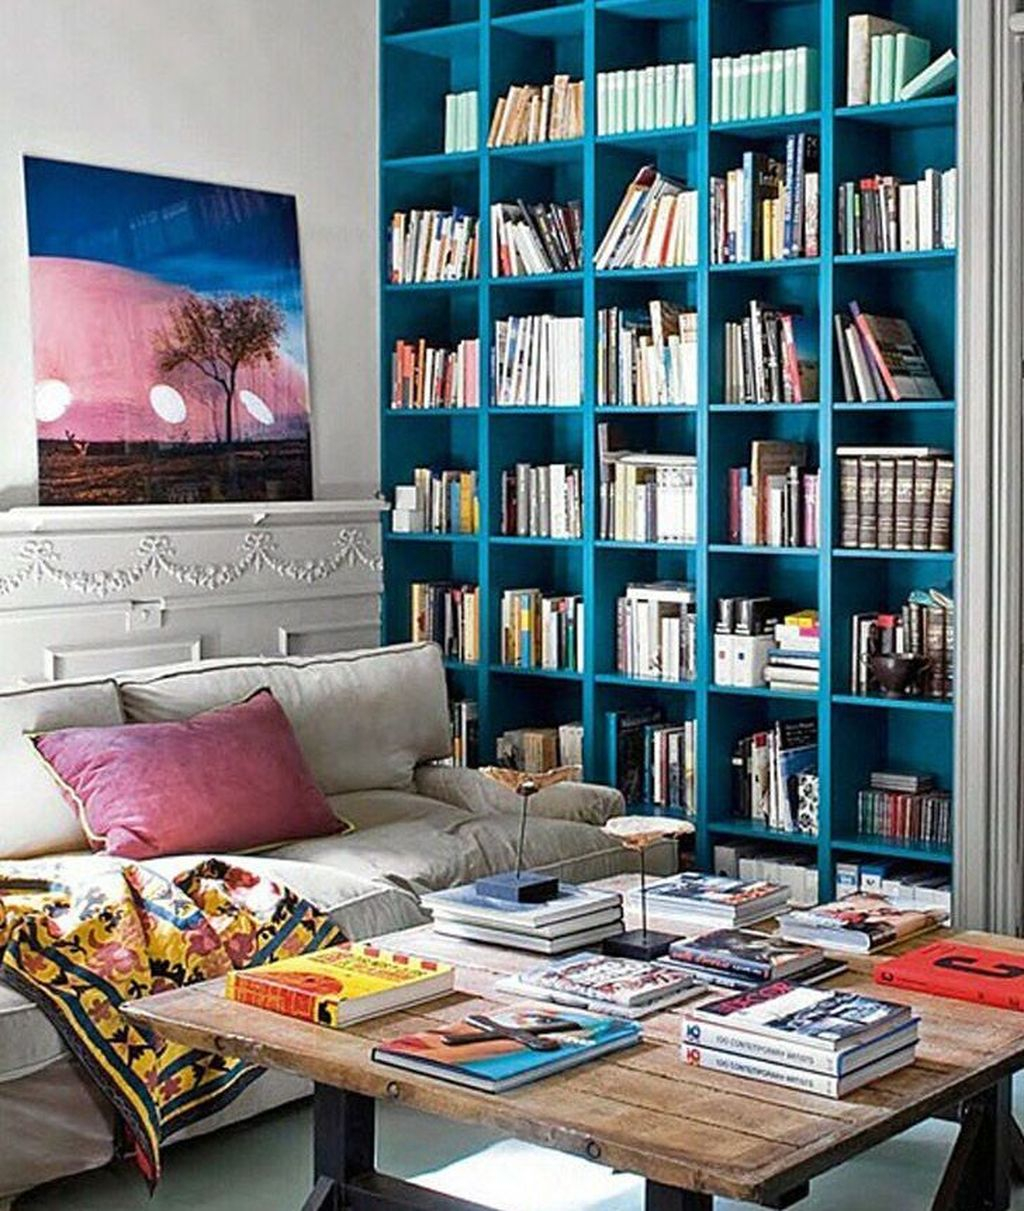 Smart Library Design Ideas For Home To Add To Your List 16